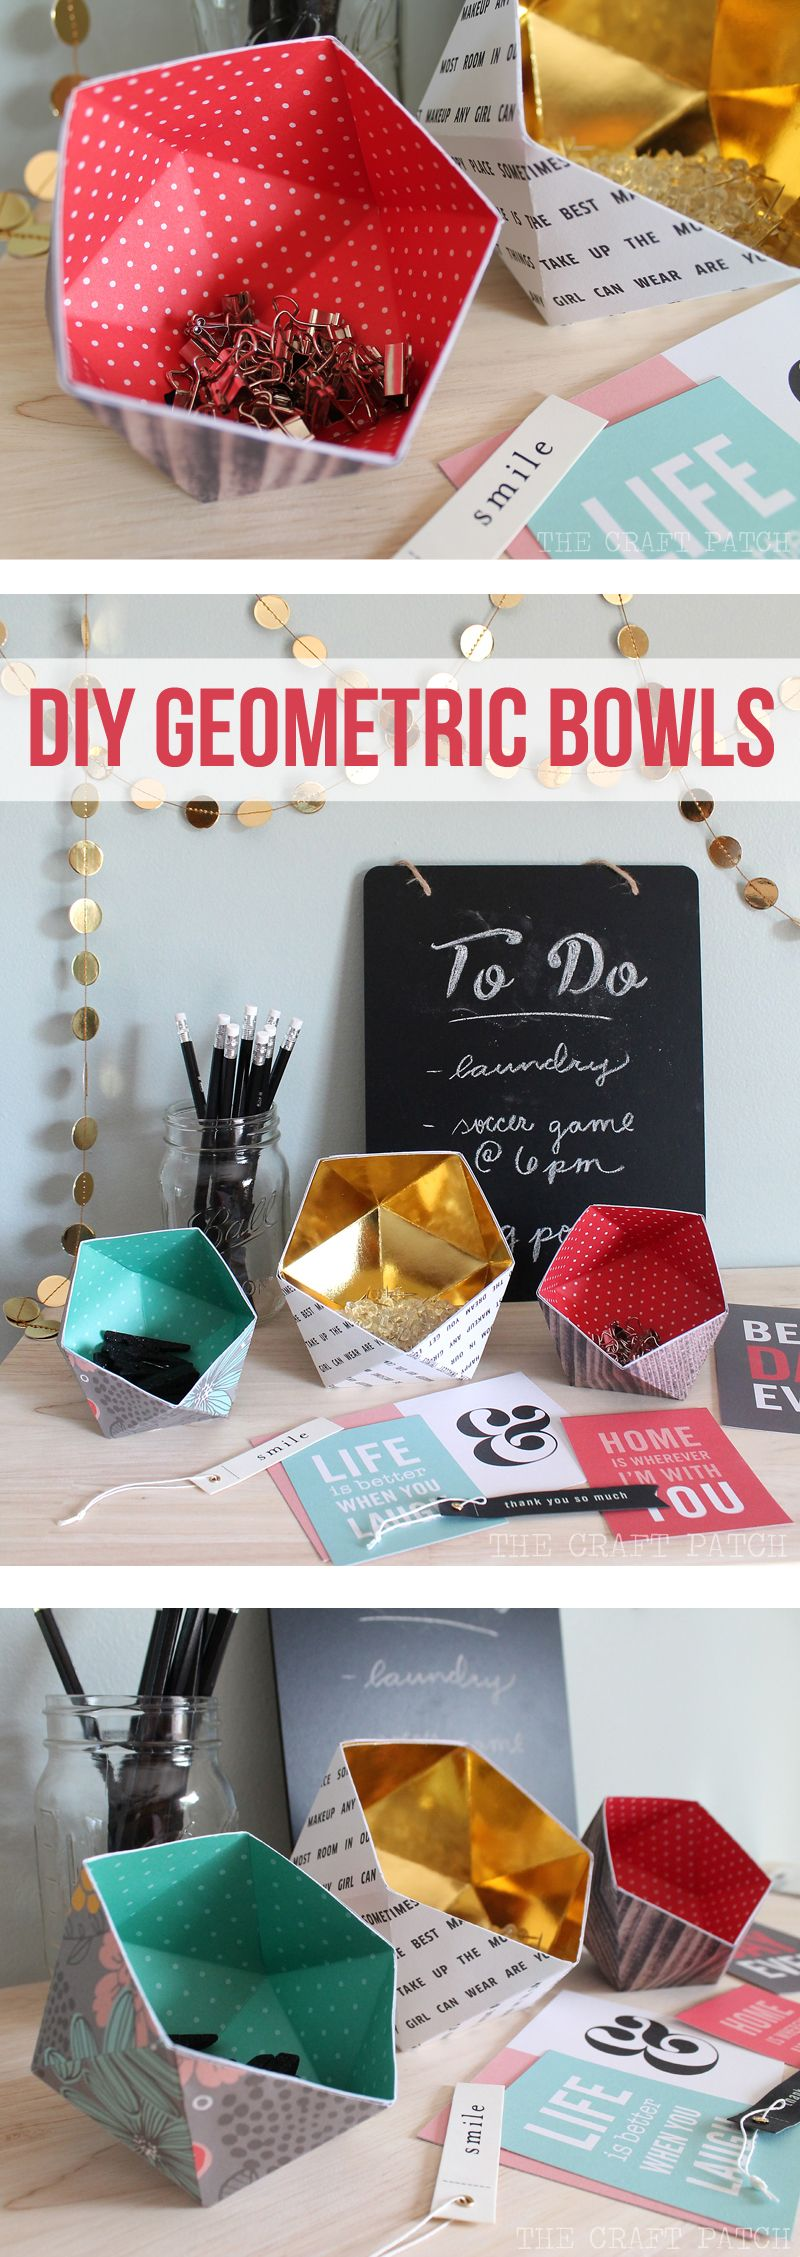 Cute Diy Geometric Bowls For Office Supply Organization